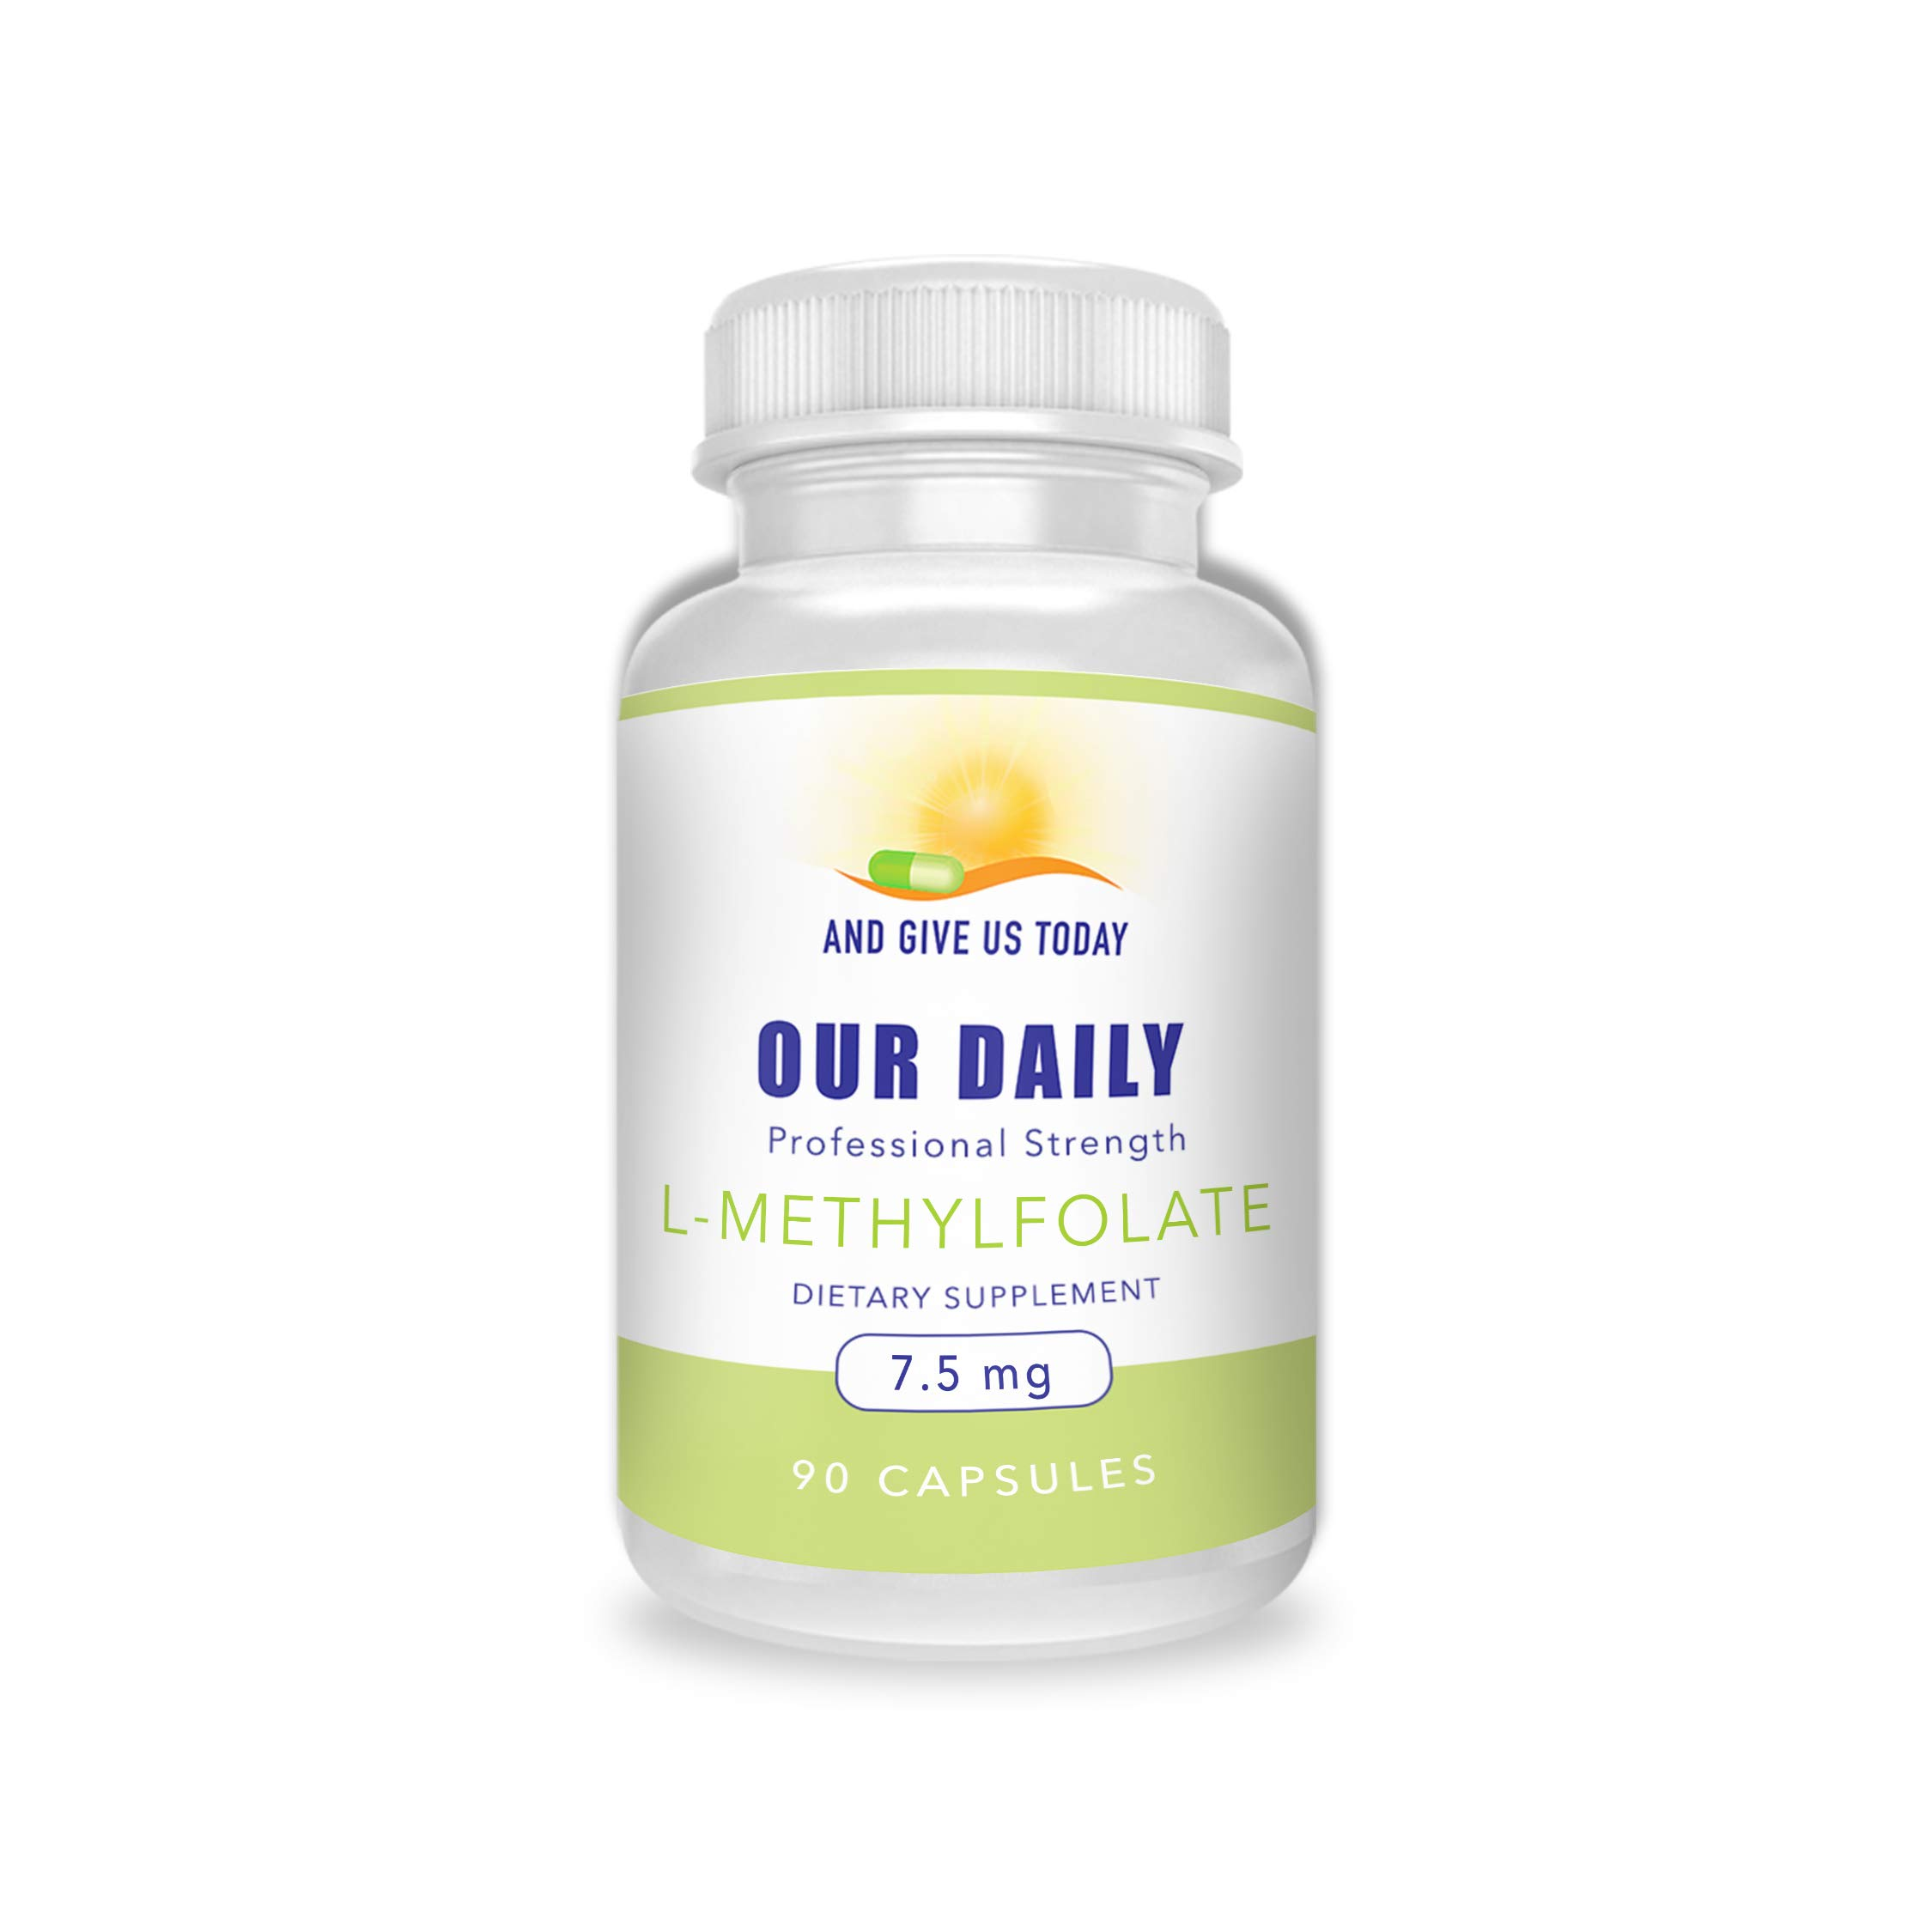 Our Daily Vites L-Methylfolate 7.5 mg / 7500 mcg Maximum Strength Active Folate, 5-MTHF, Filler Free, Gluten Free, Non-GMO, Vegetarian Capsules 90 Count (3 Month Supply) (90)